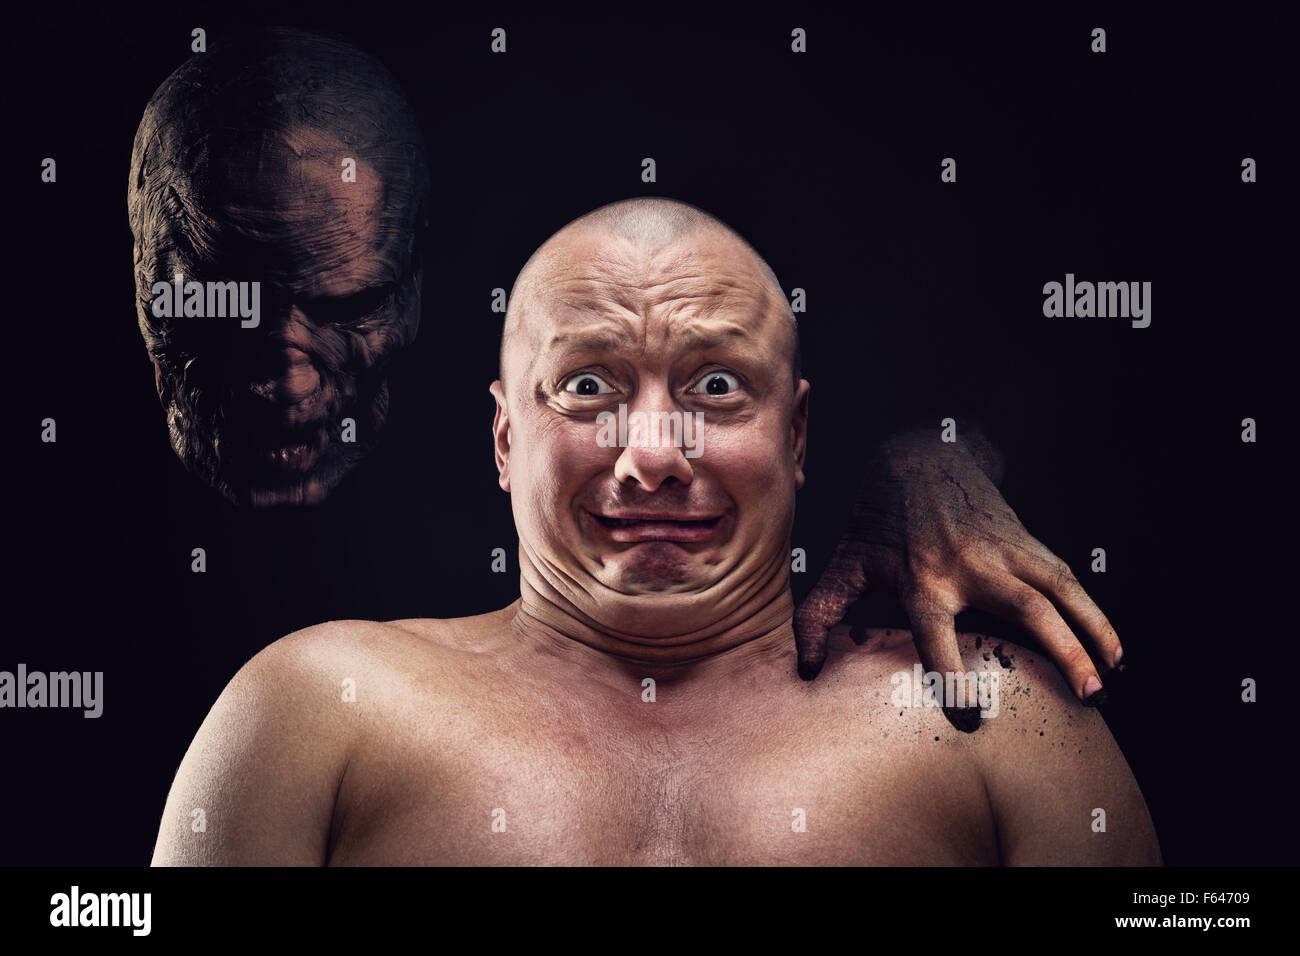 Portrait of bald scared man with nightmare - Stock Image